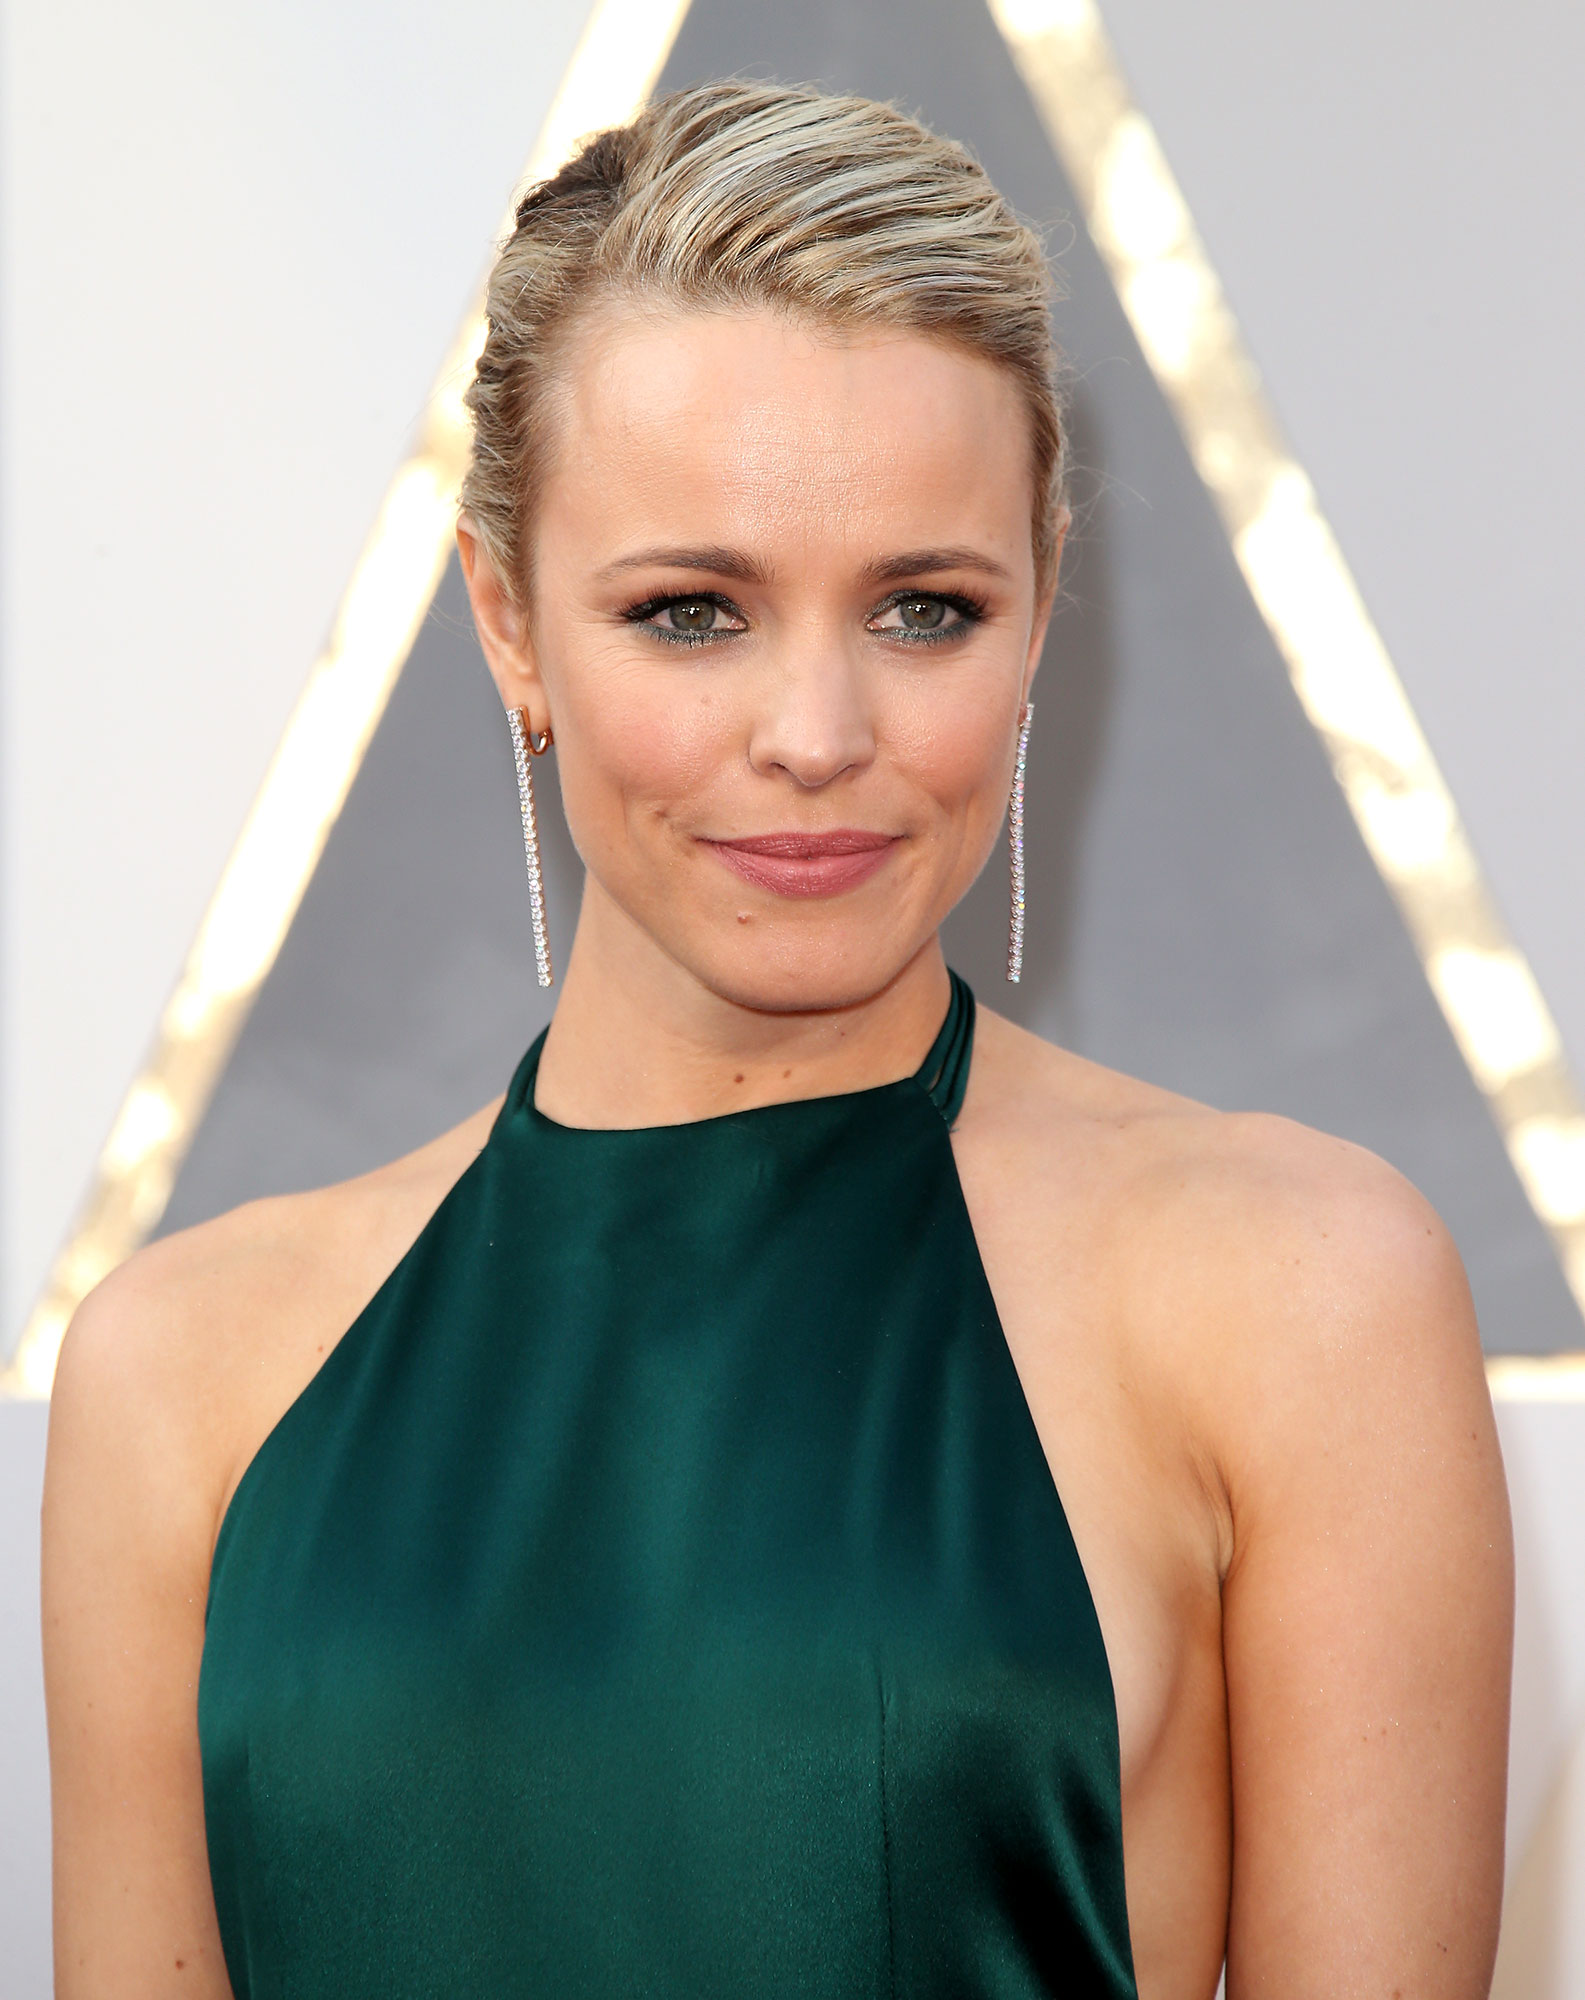 Rachel McAdams - Stars Who Have Never Won Oscars - The Notebook star became a first-time Academy Award nominee in 2016 for her supporting role in Spotlight , but she didn't ultimately take home the trophy.